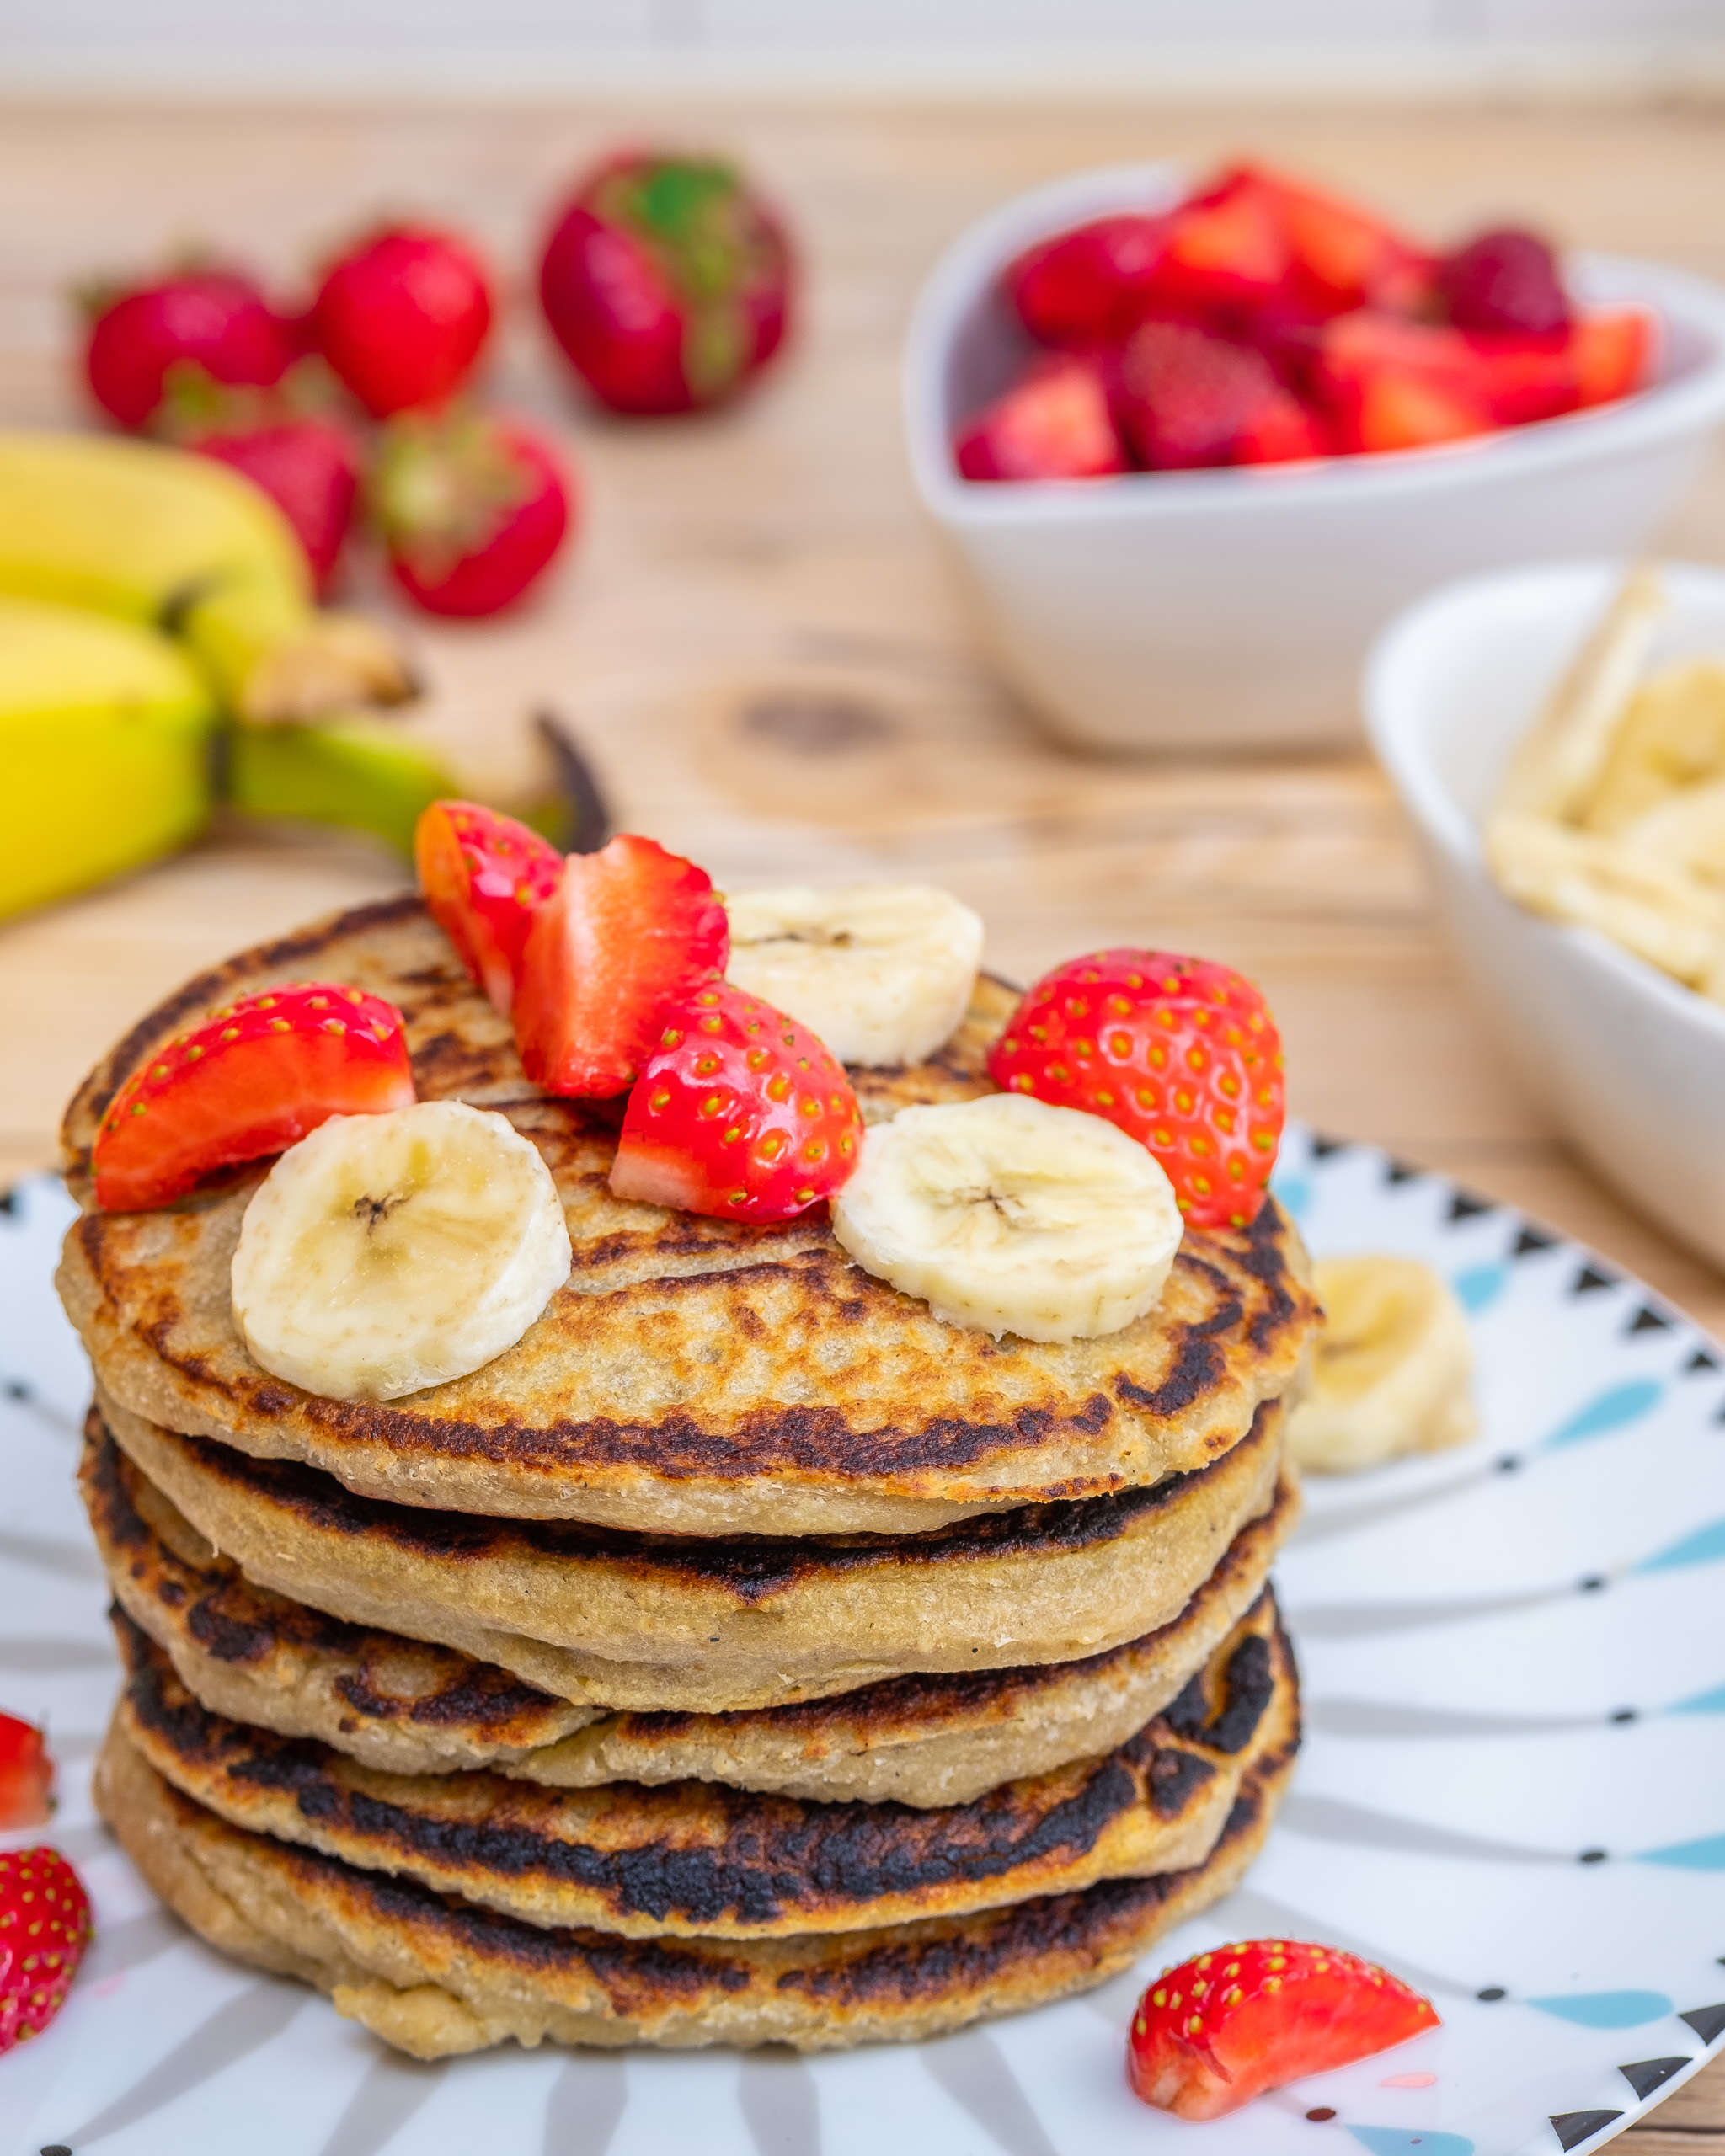 Vegan banana pancakes with cardamom